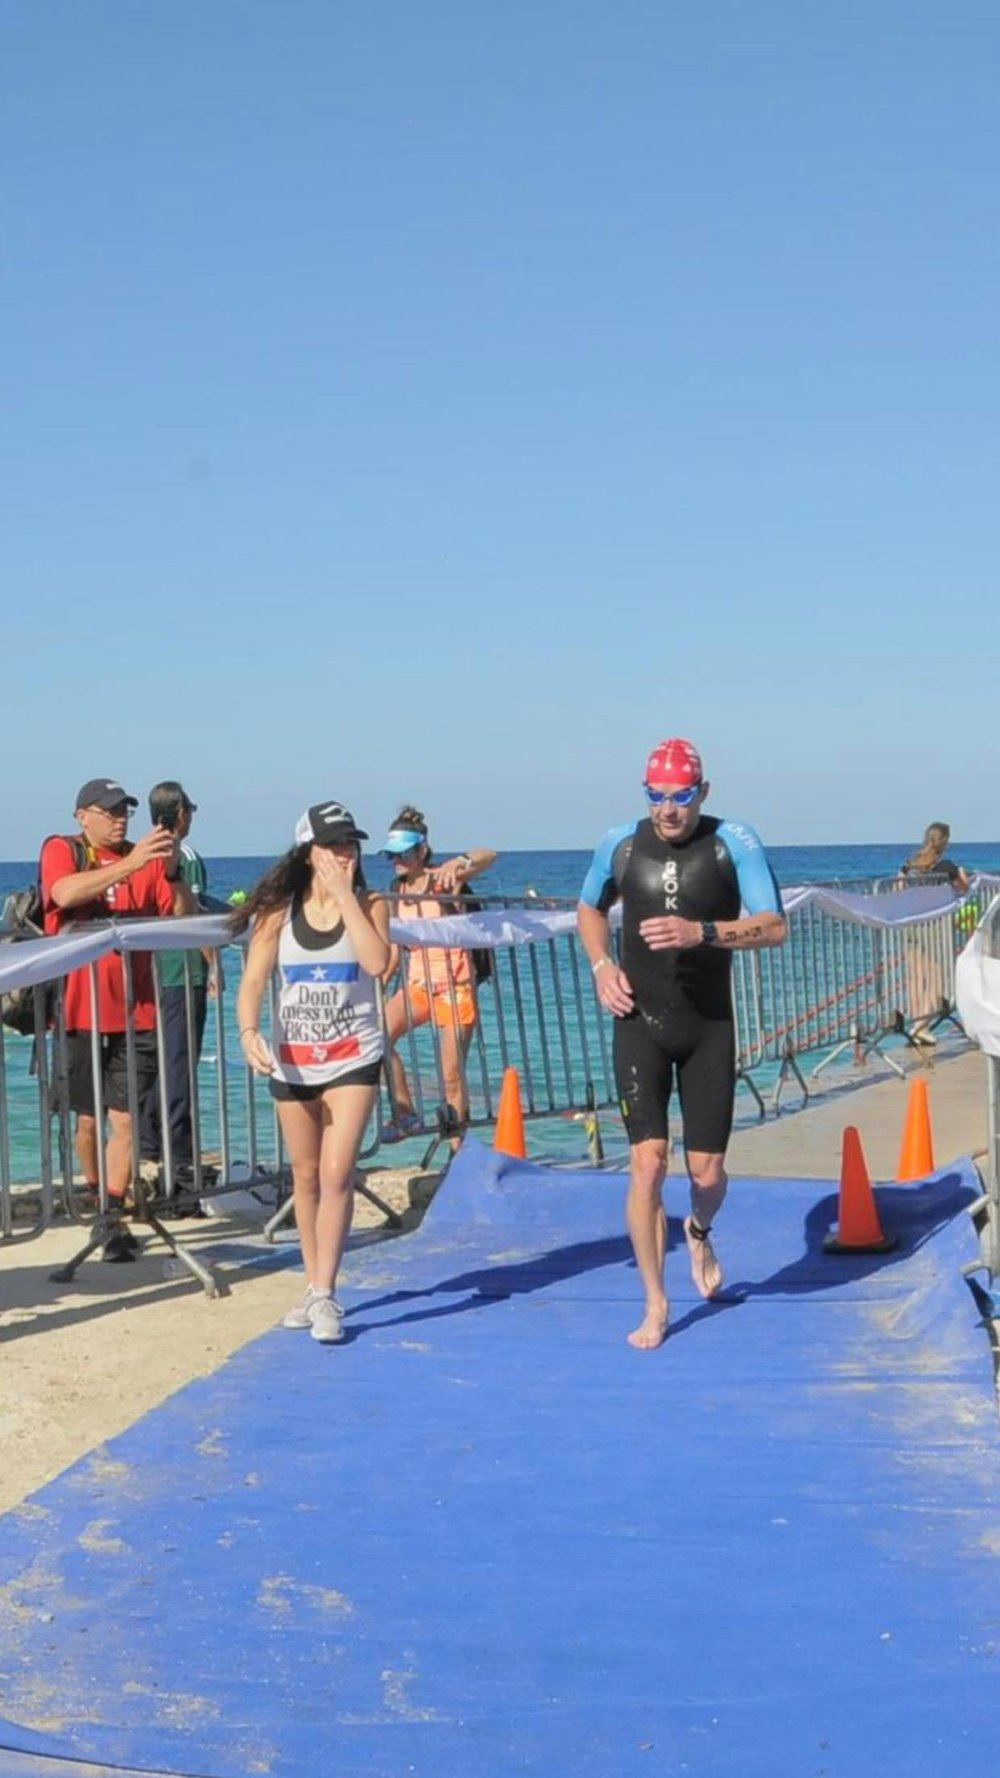 Coach_Terry_Wilson_Pursuit_of_The_Perfect_Race_IRONMAN_Swim_out.jpg